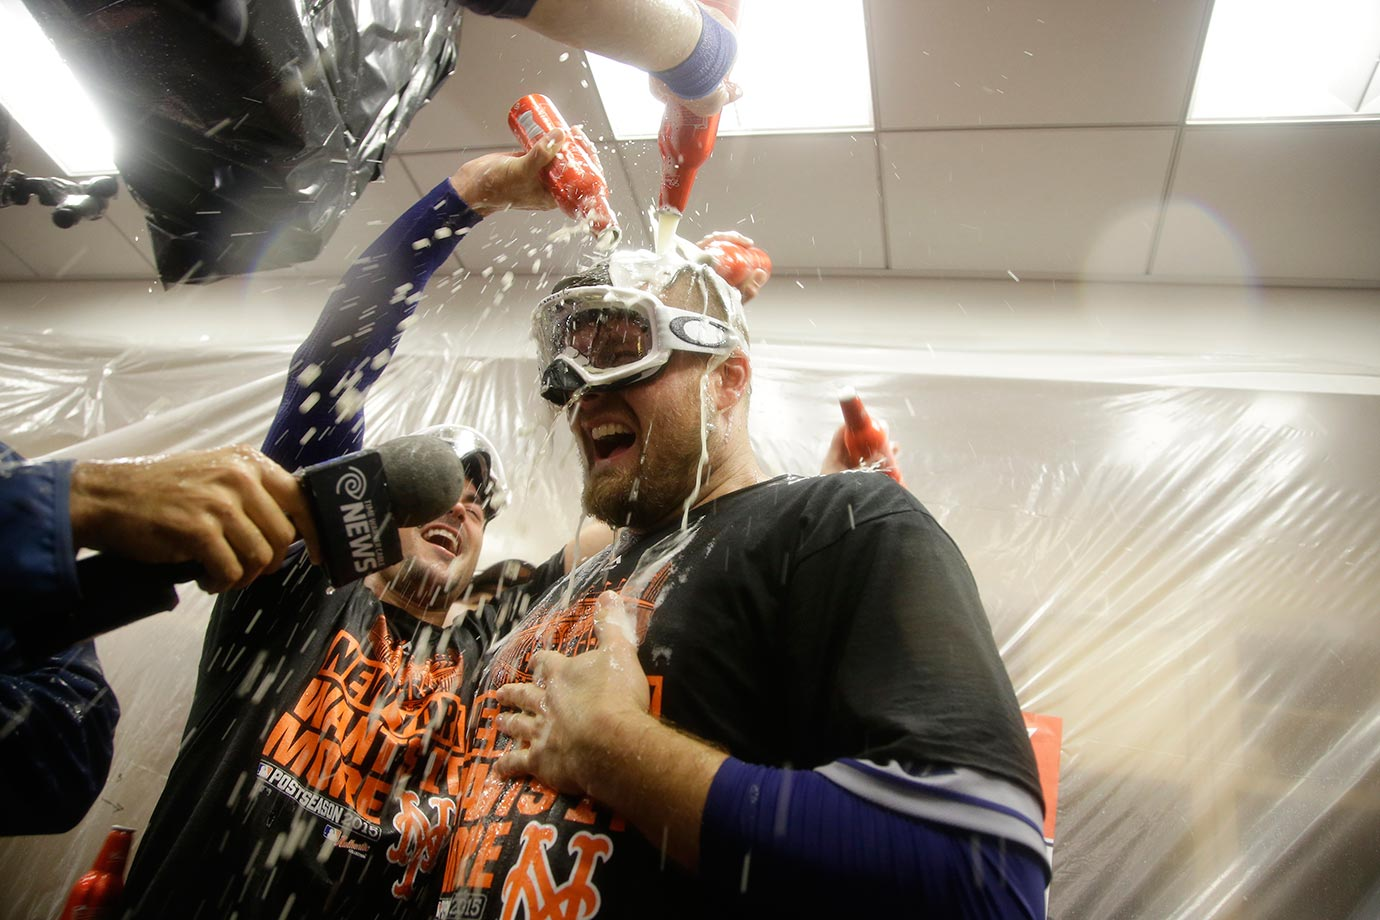 Lucas Duda of the Mets celebrating a win against the Dodgers in Game 5 of the NLDS.